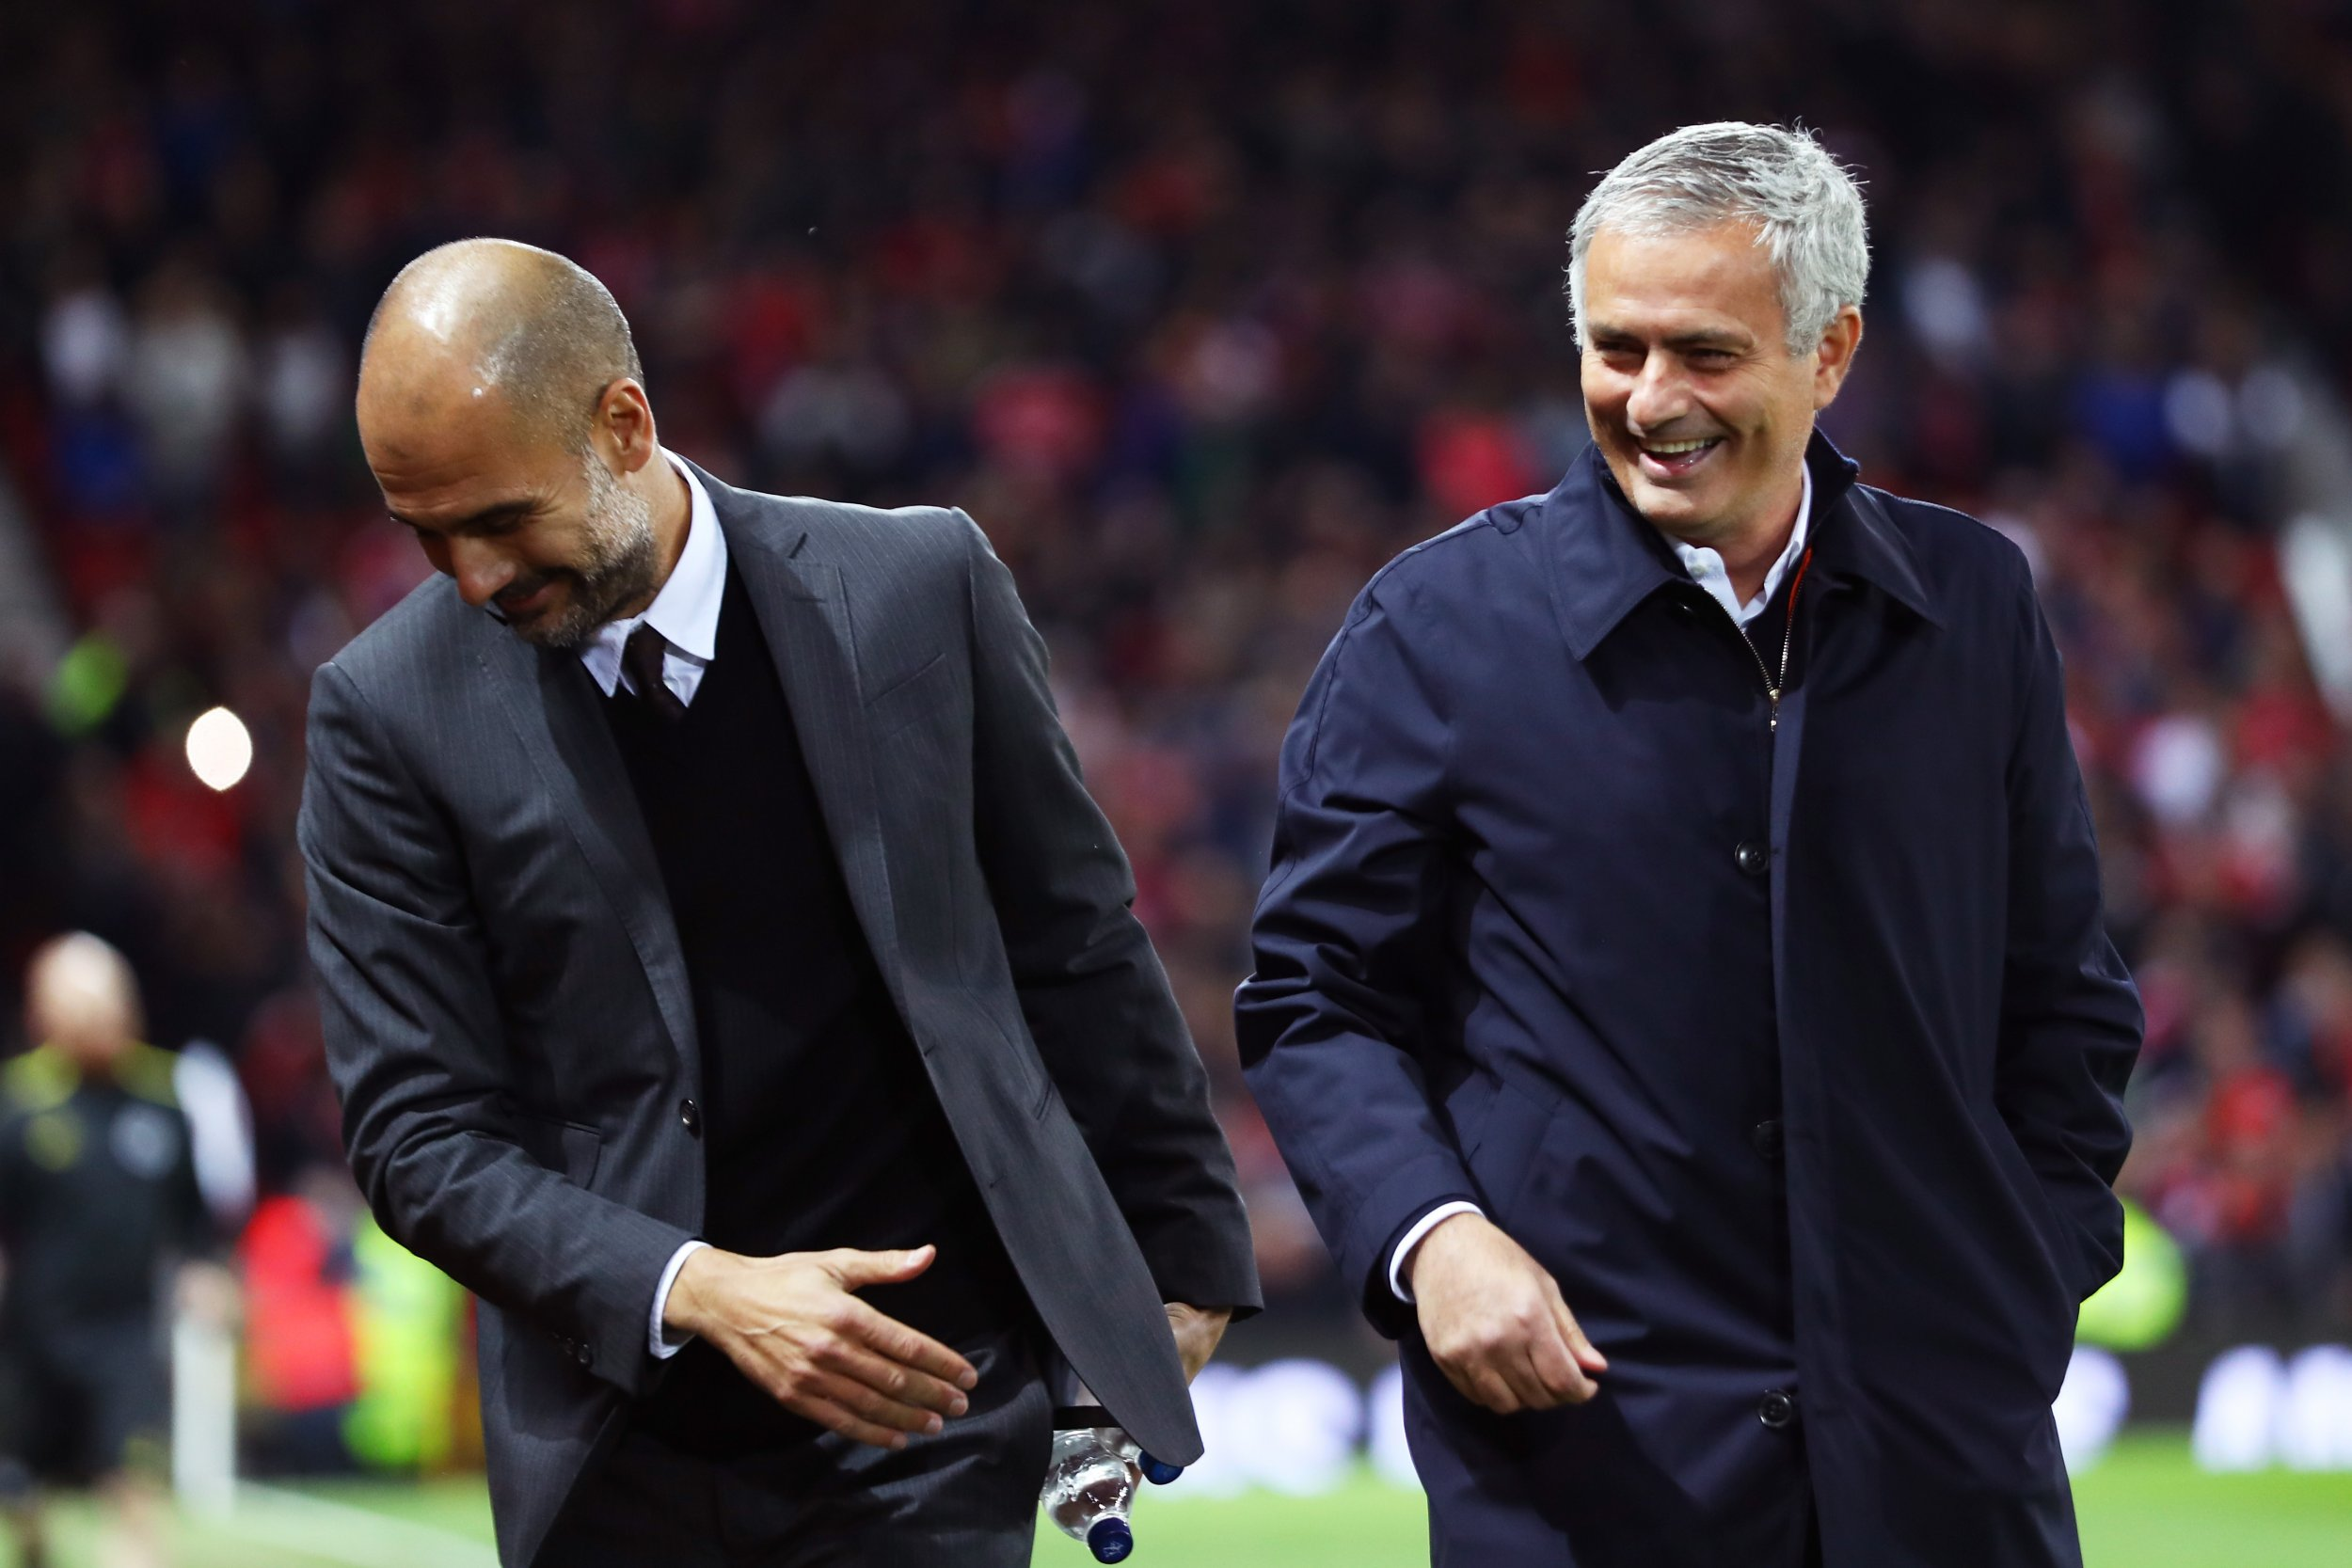 Pep Guardiola, left, with Jose Mourinho.